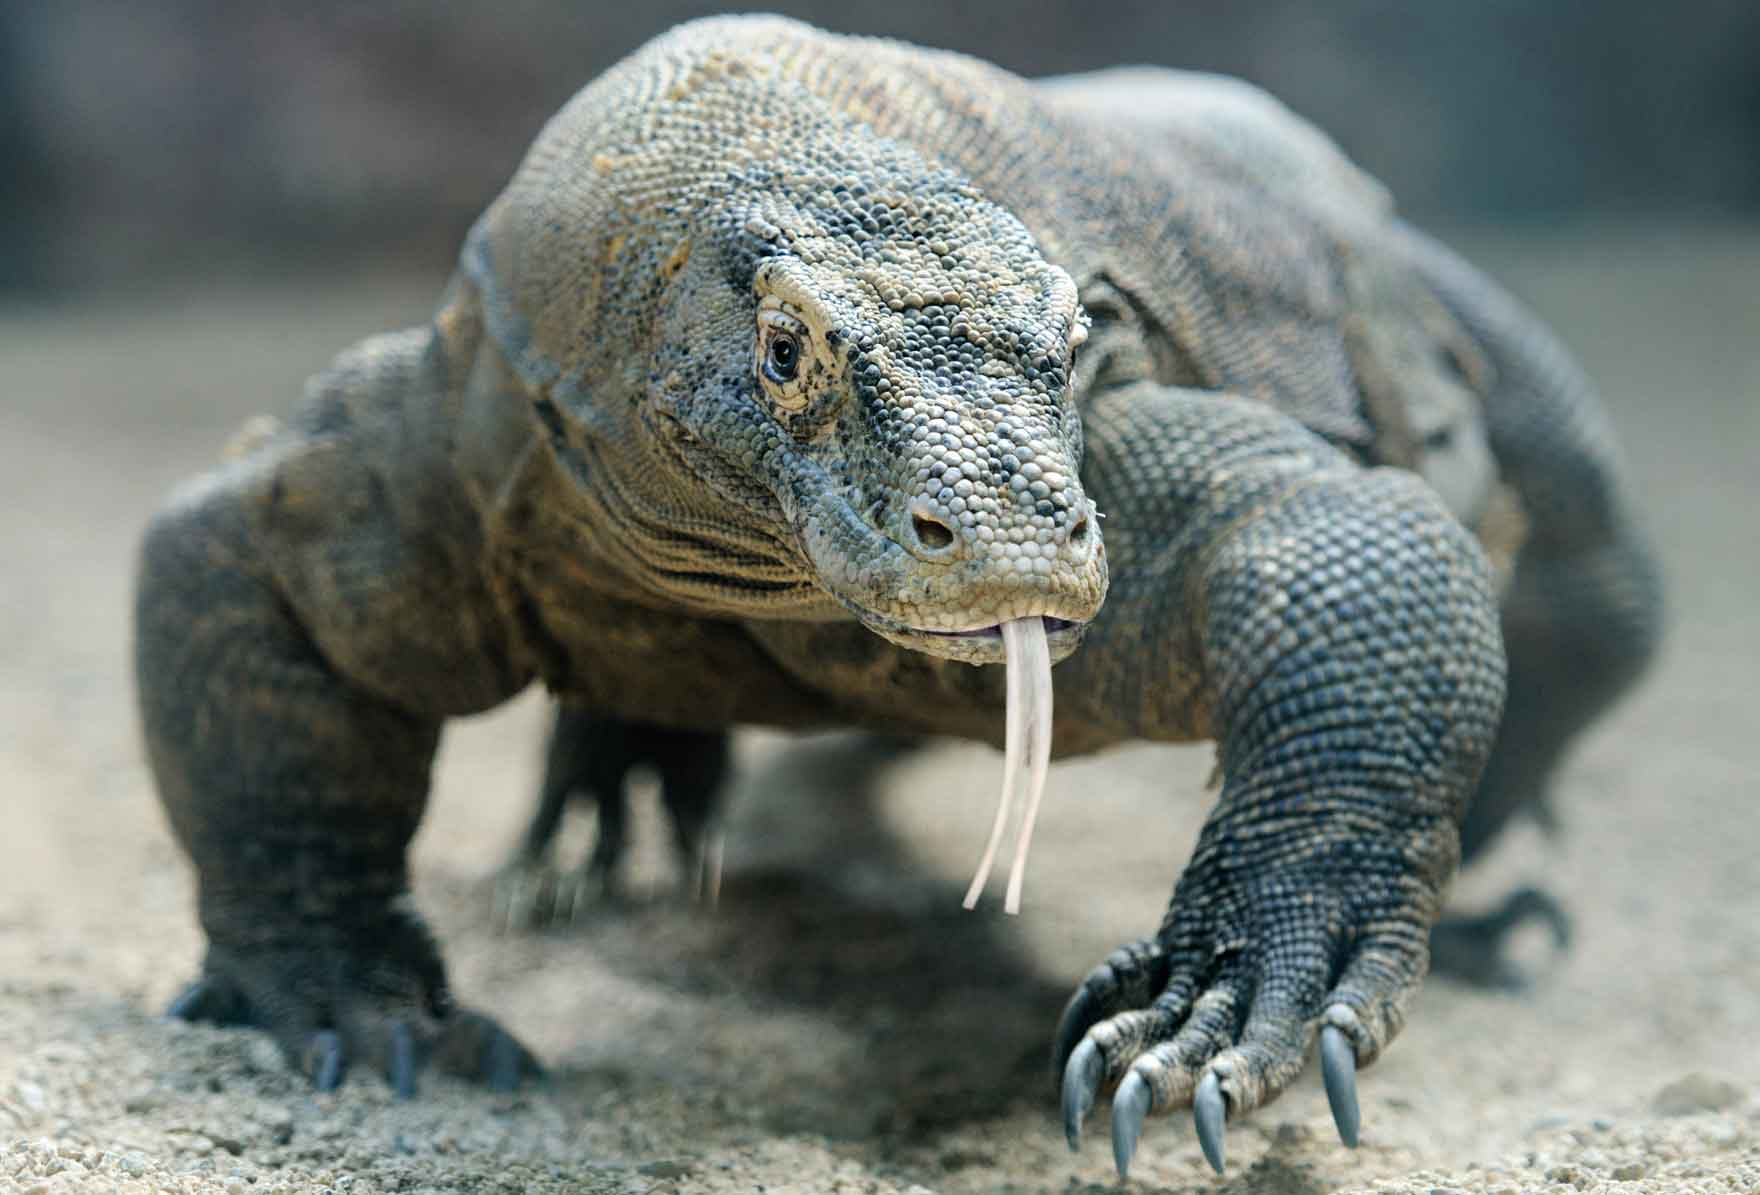 Komodo Dragon Blood Could Fight Antibiotic-Resistant Bacteria image